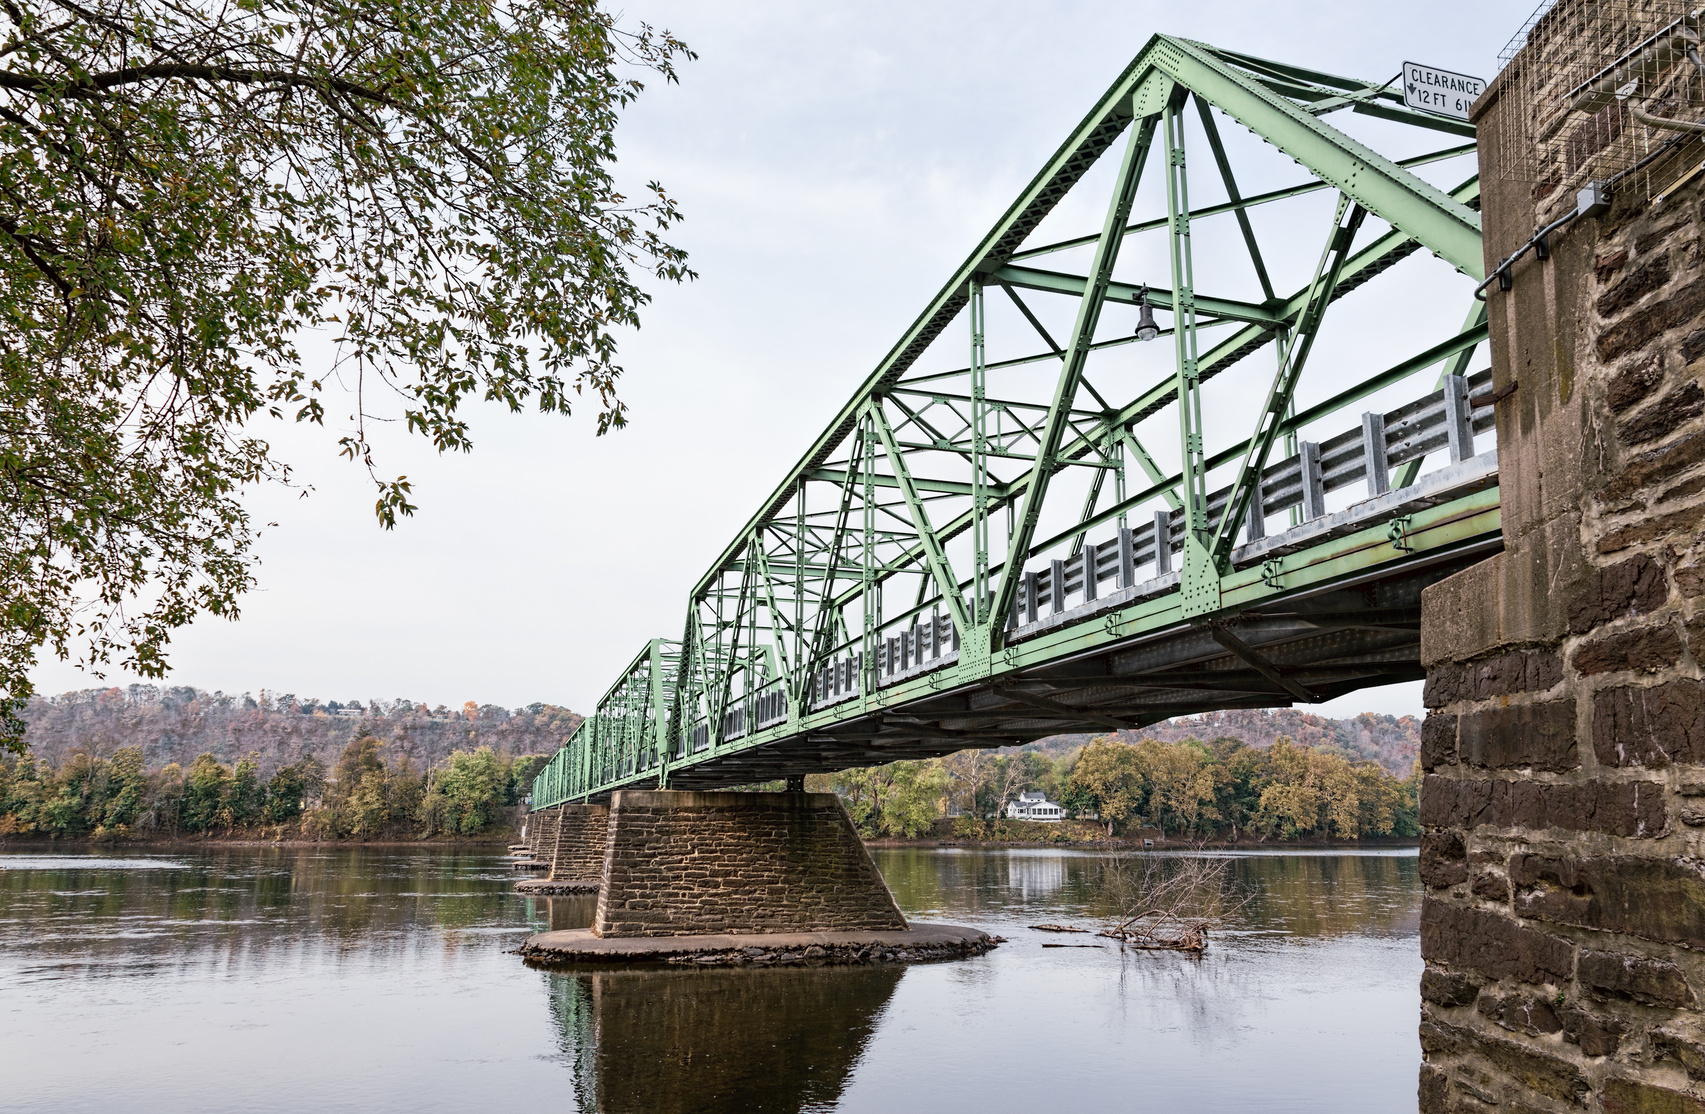 Uhlerstown-Frenchtown Bridge over the Delaware River Connecting